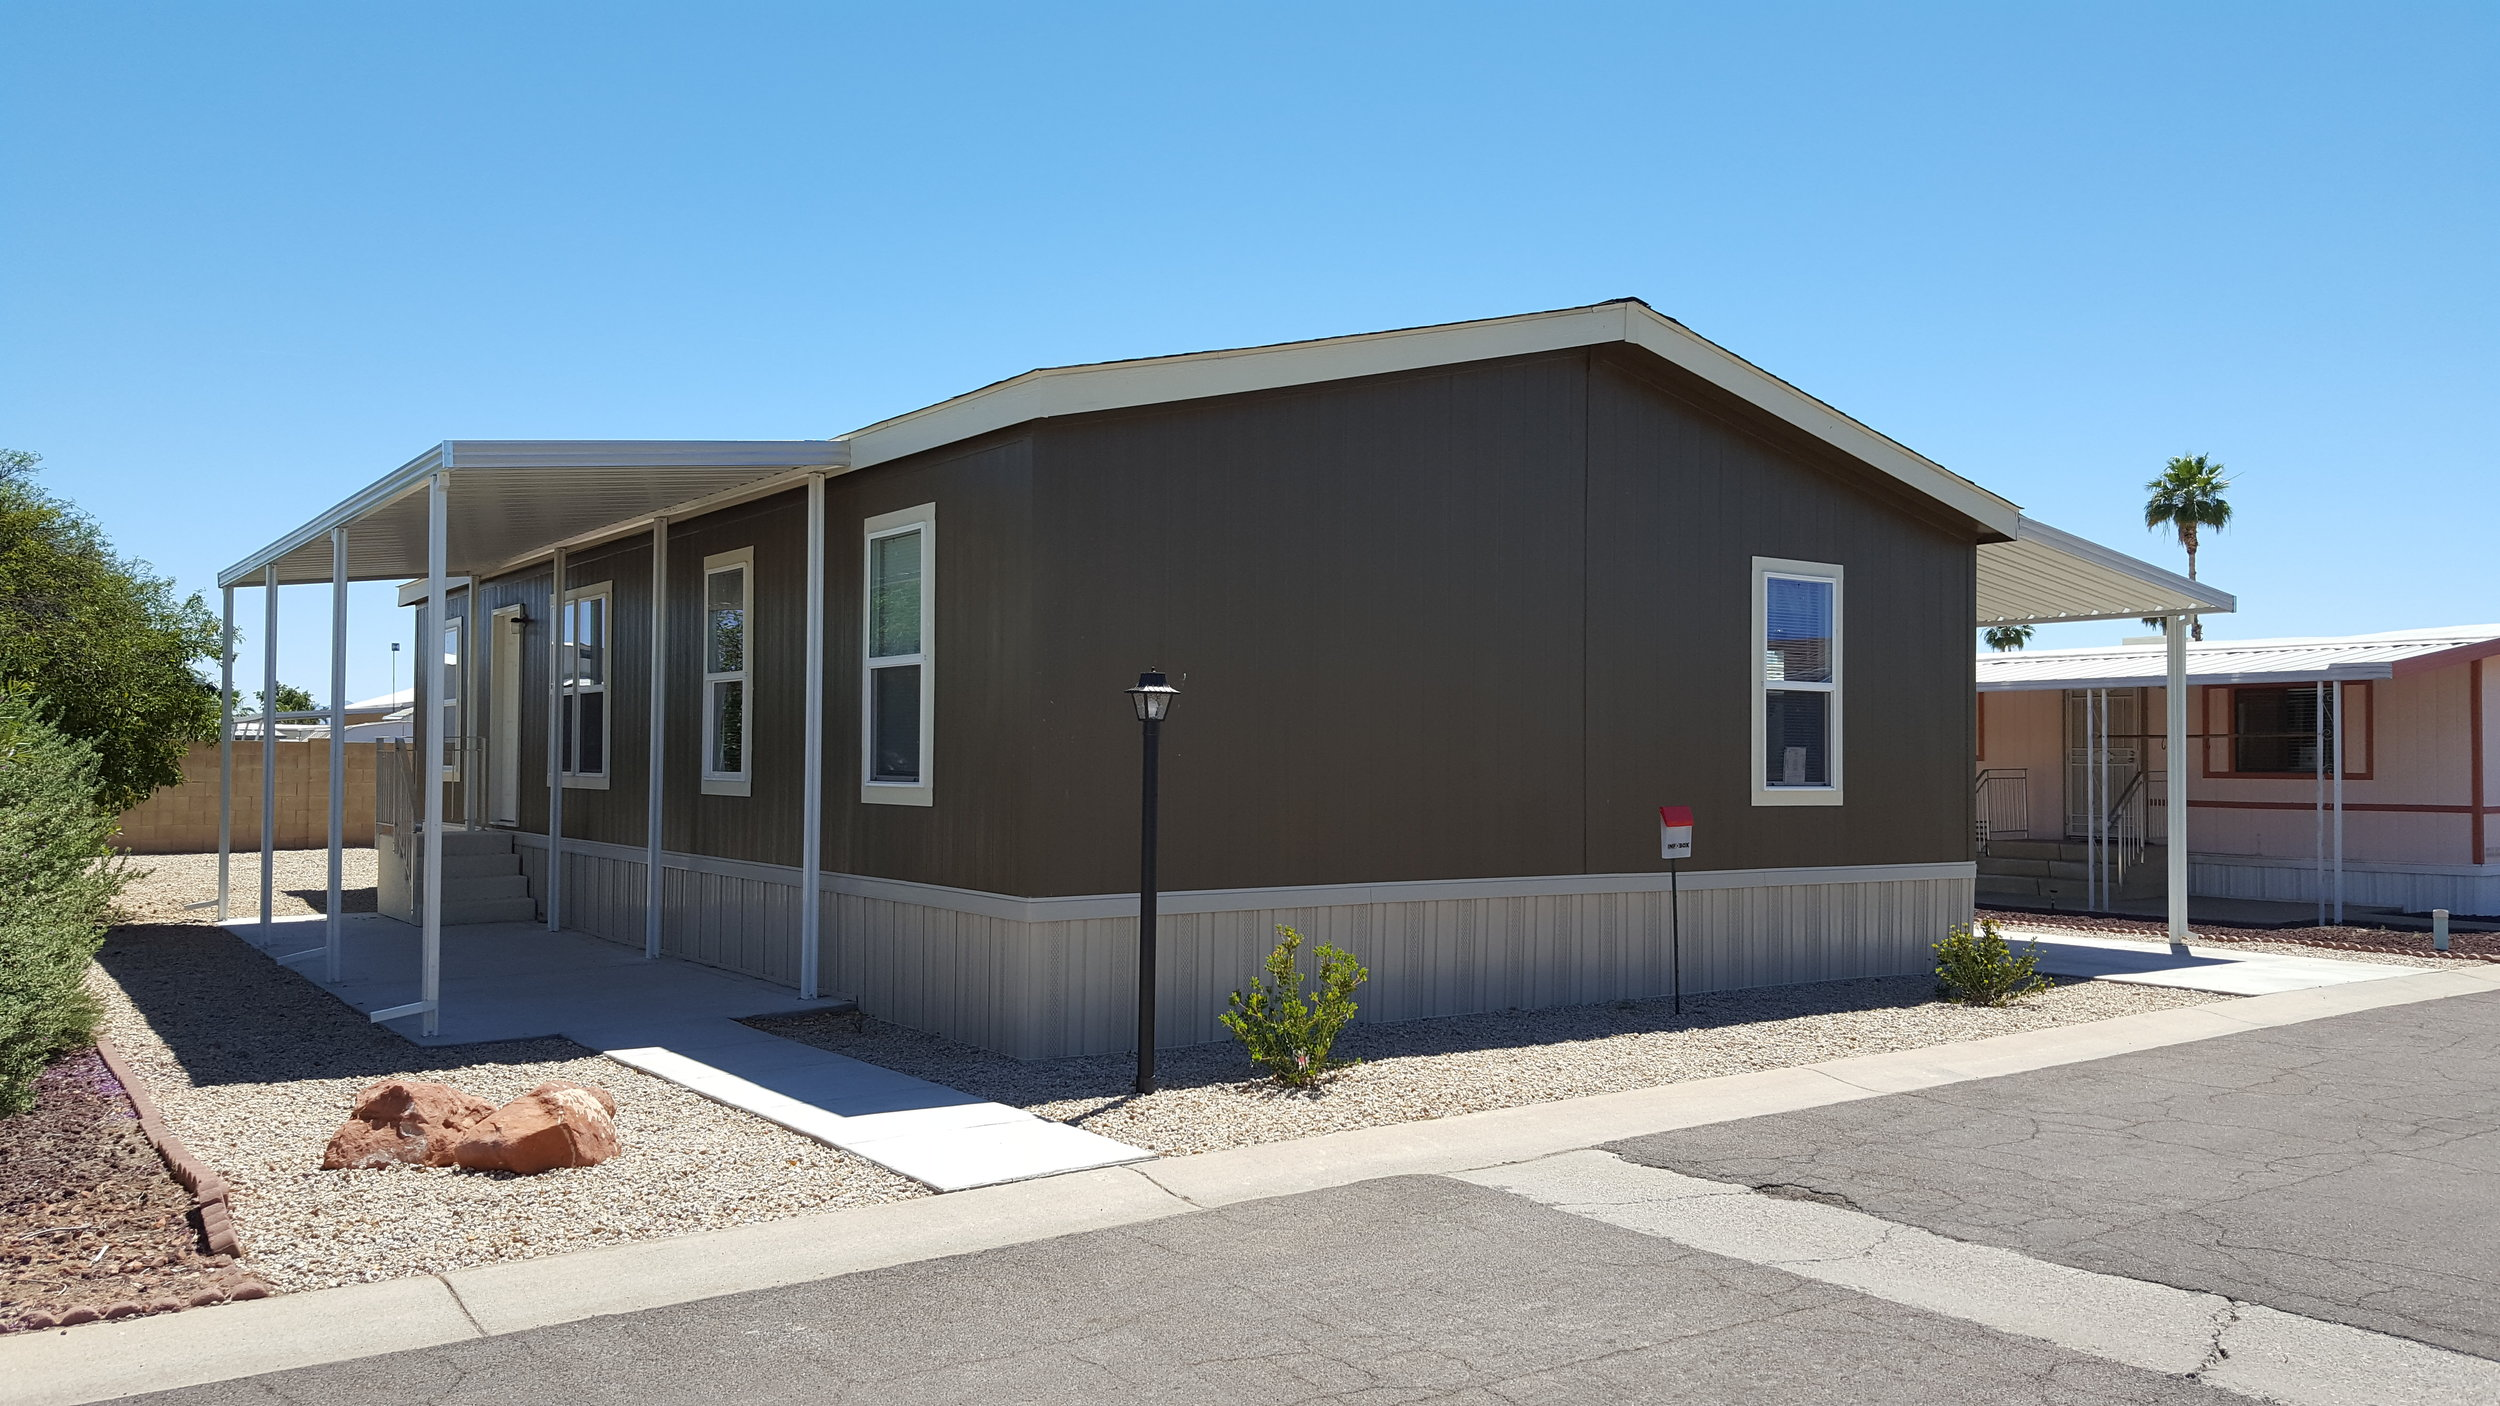 Features - All homes are energy smart and come with a one-year warranty, fiber concrete siding, tape/texture interiors, low E dual glazed windows, primed and painted base boards, 4